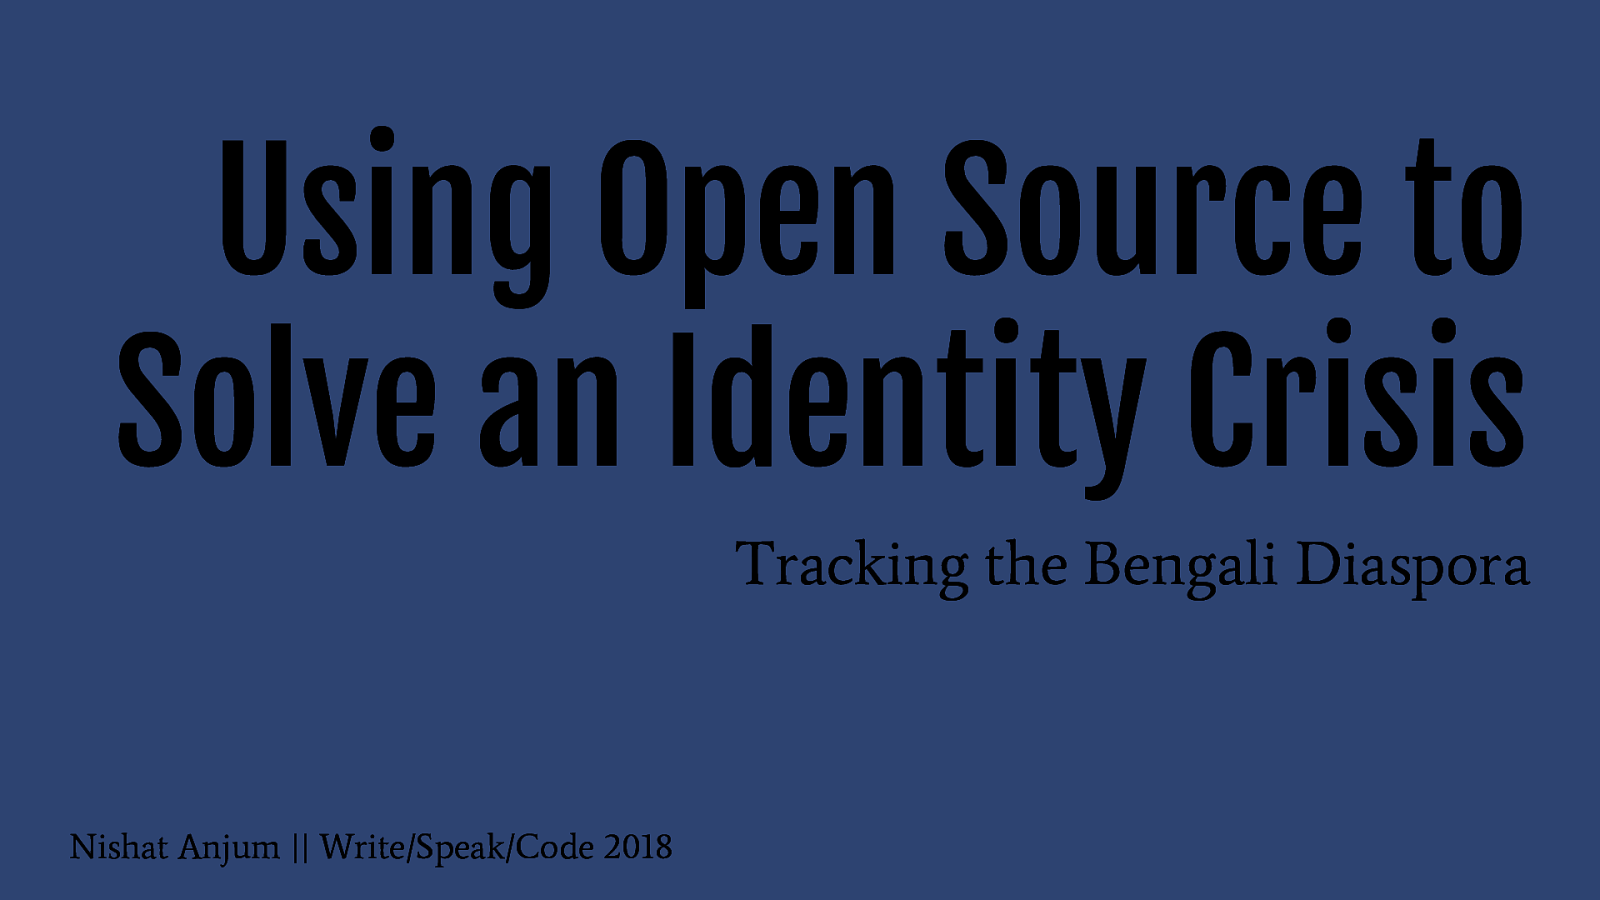 Using Open Source to Solve an Identity Crisis